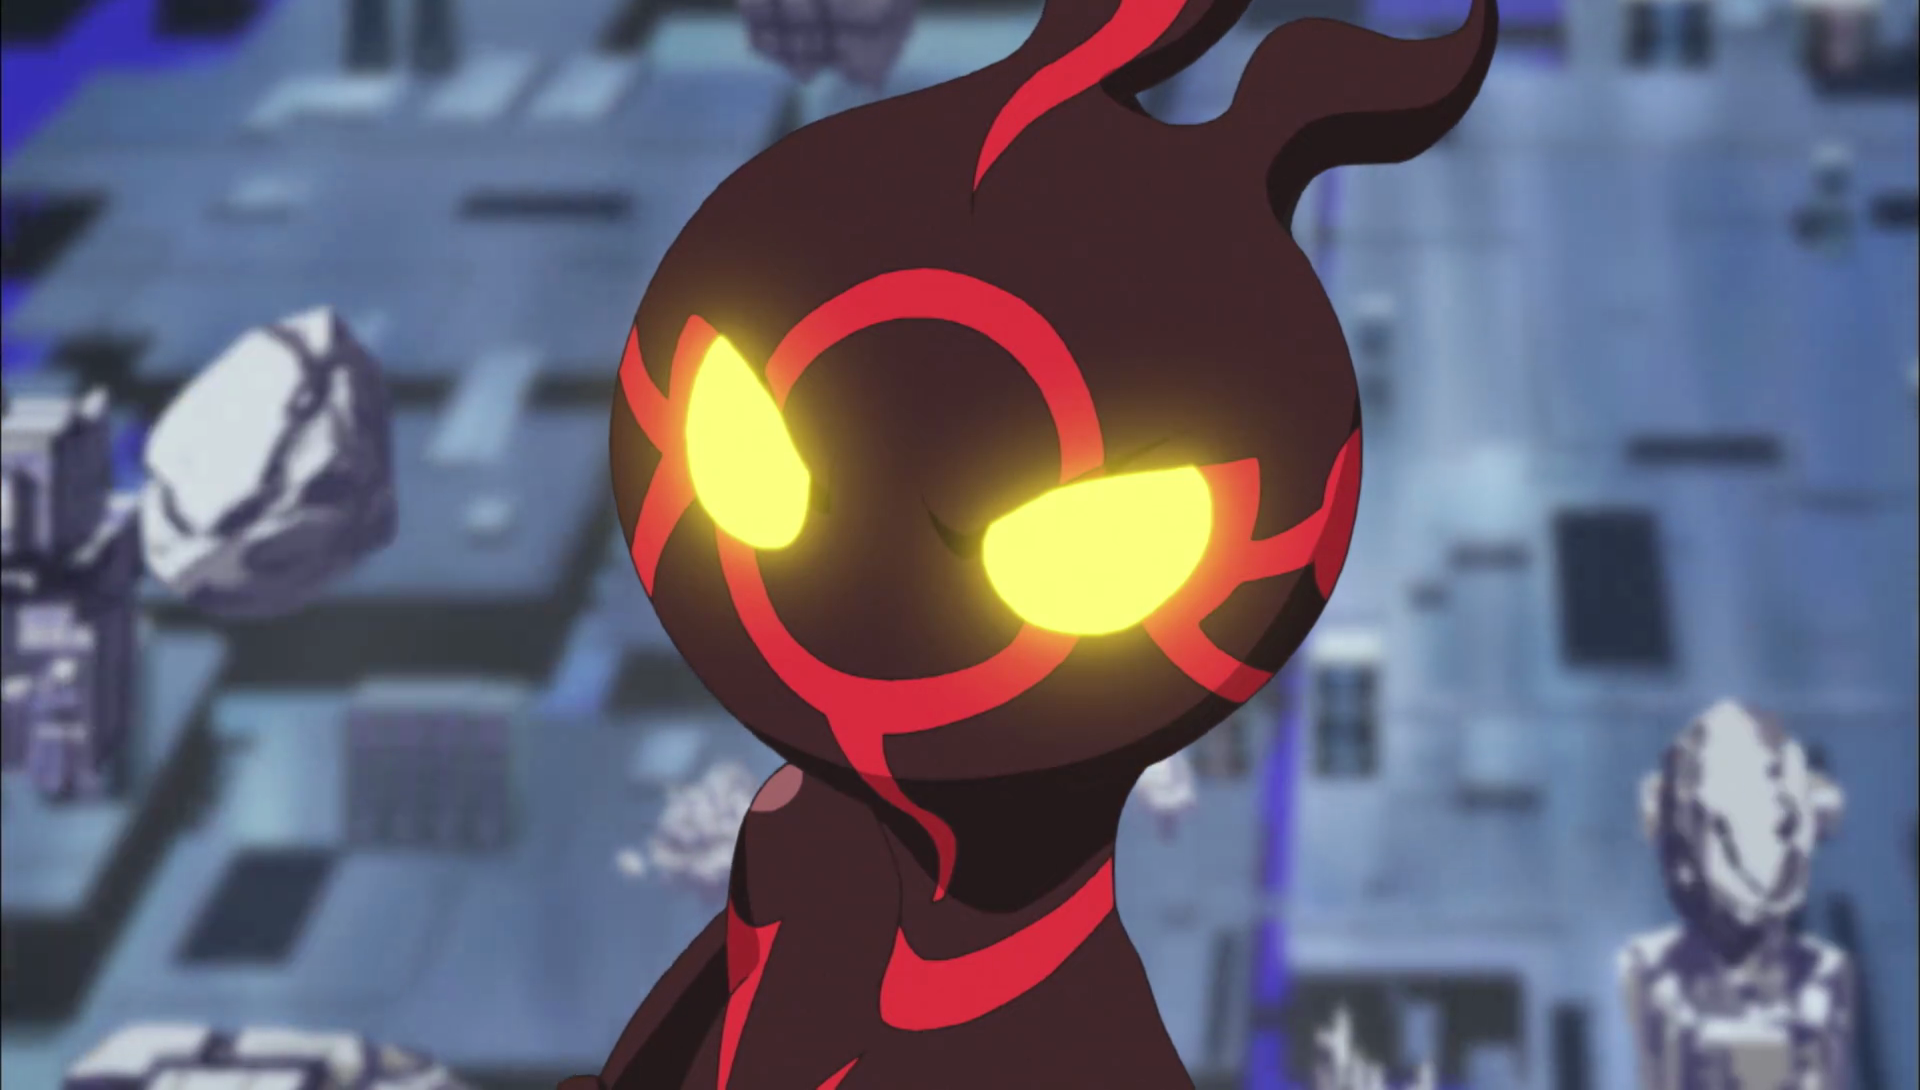 Flame (character)